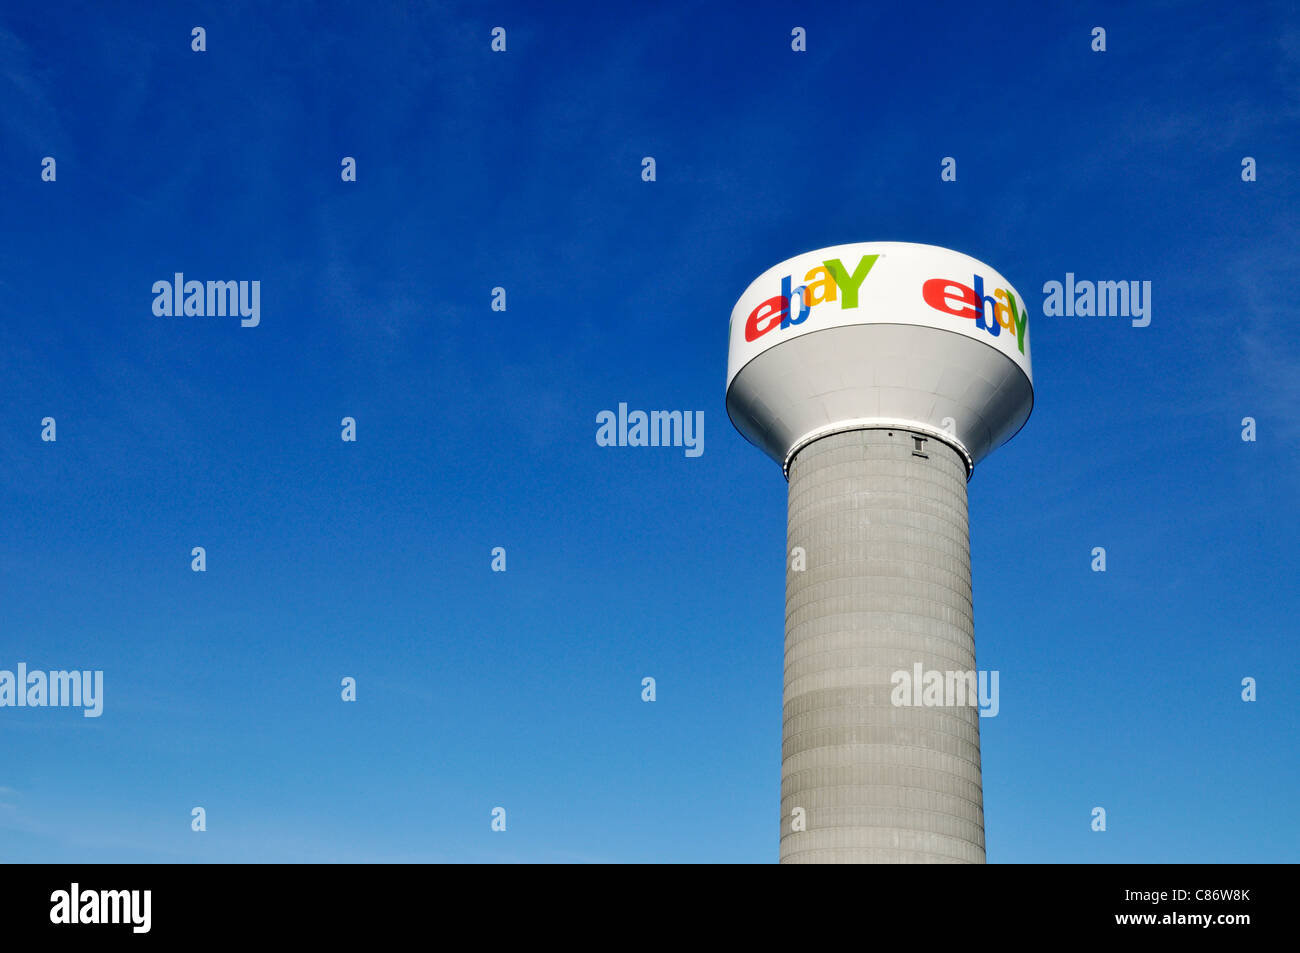 ebay logo on water tower on a clear blue sky day. USA - Stock Image